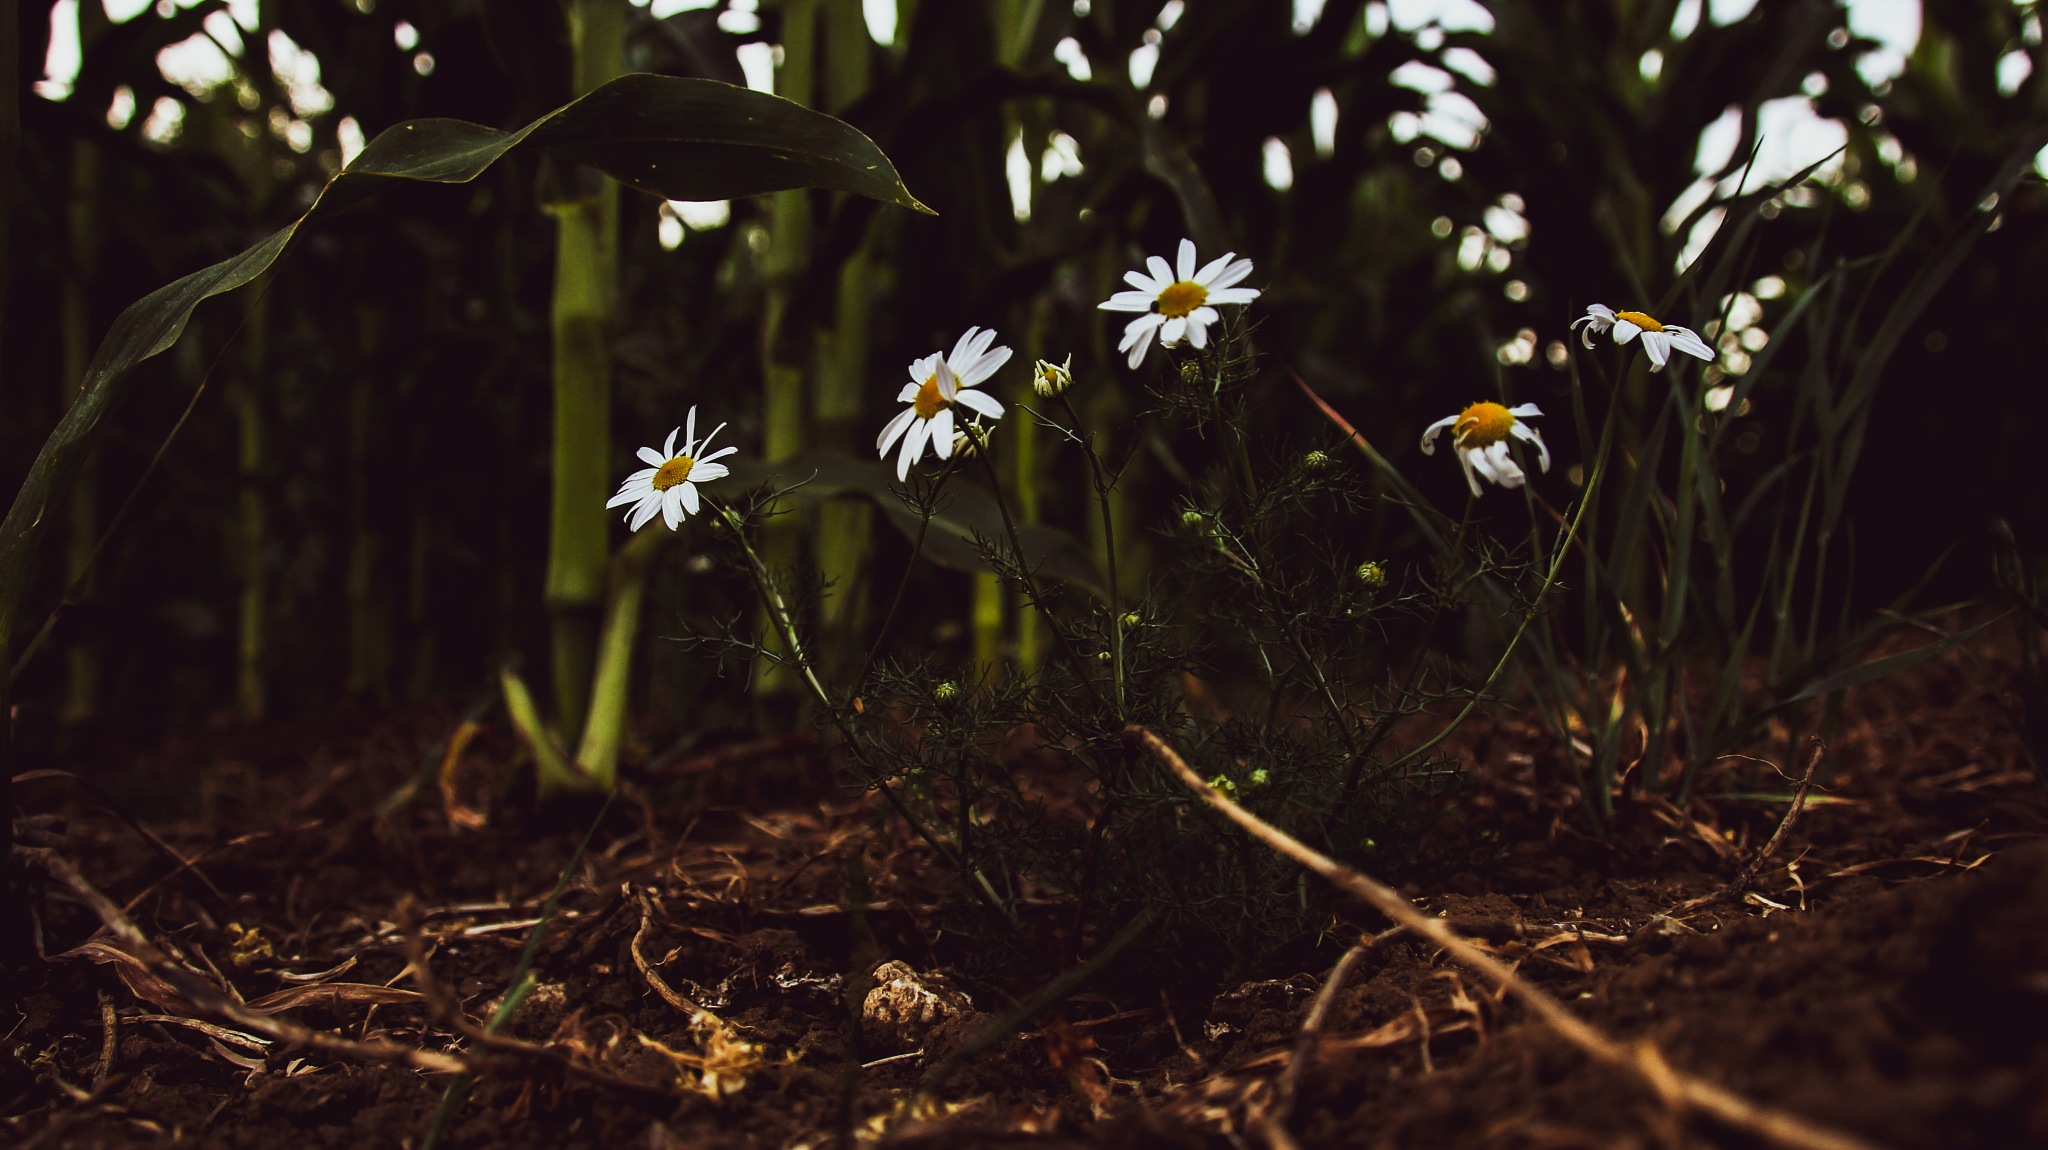 Daisys growing from the mud  by Harley Creighton